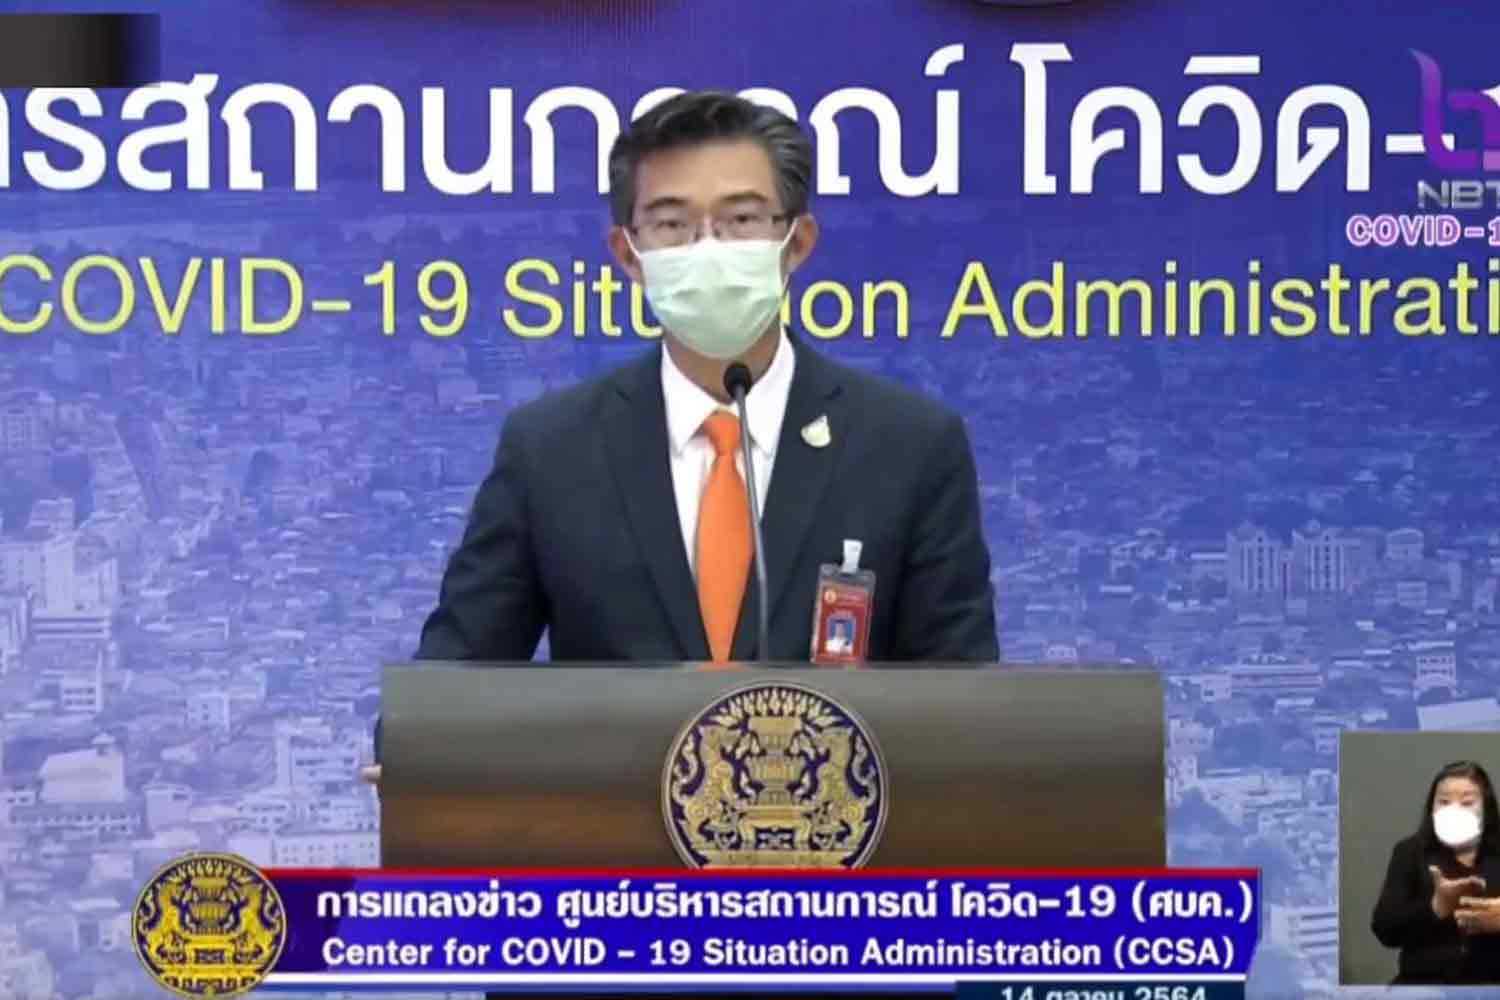 CCSA spokesman Taweesilp Visanuyothin announces new Covid-19 zoning and further easing of disease controls, effective on Saturday, at Government House on Thursday. (Screenshot)